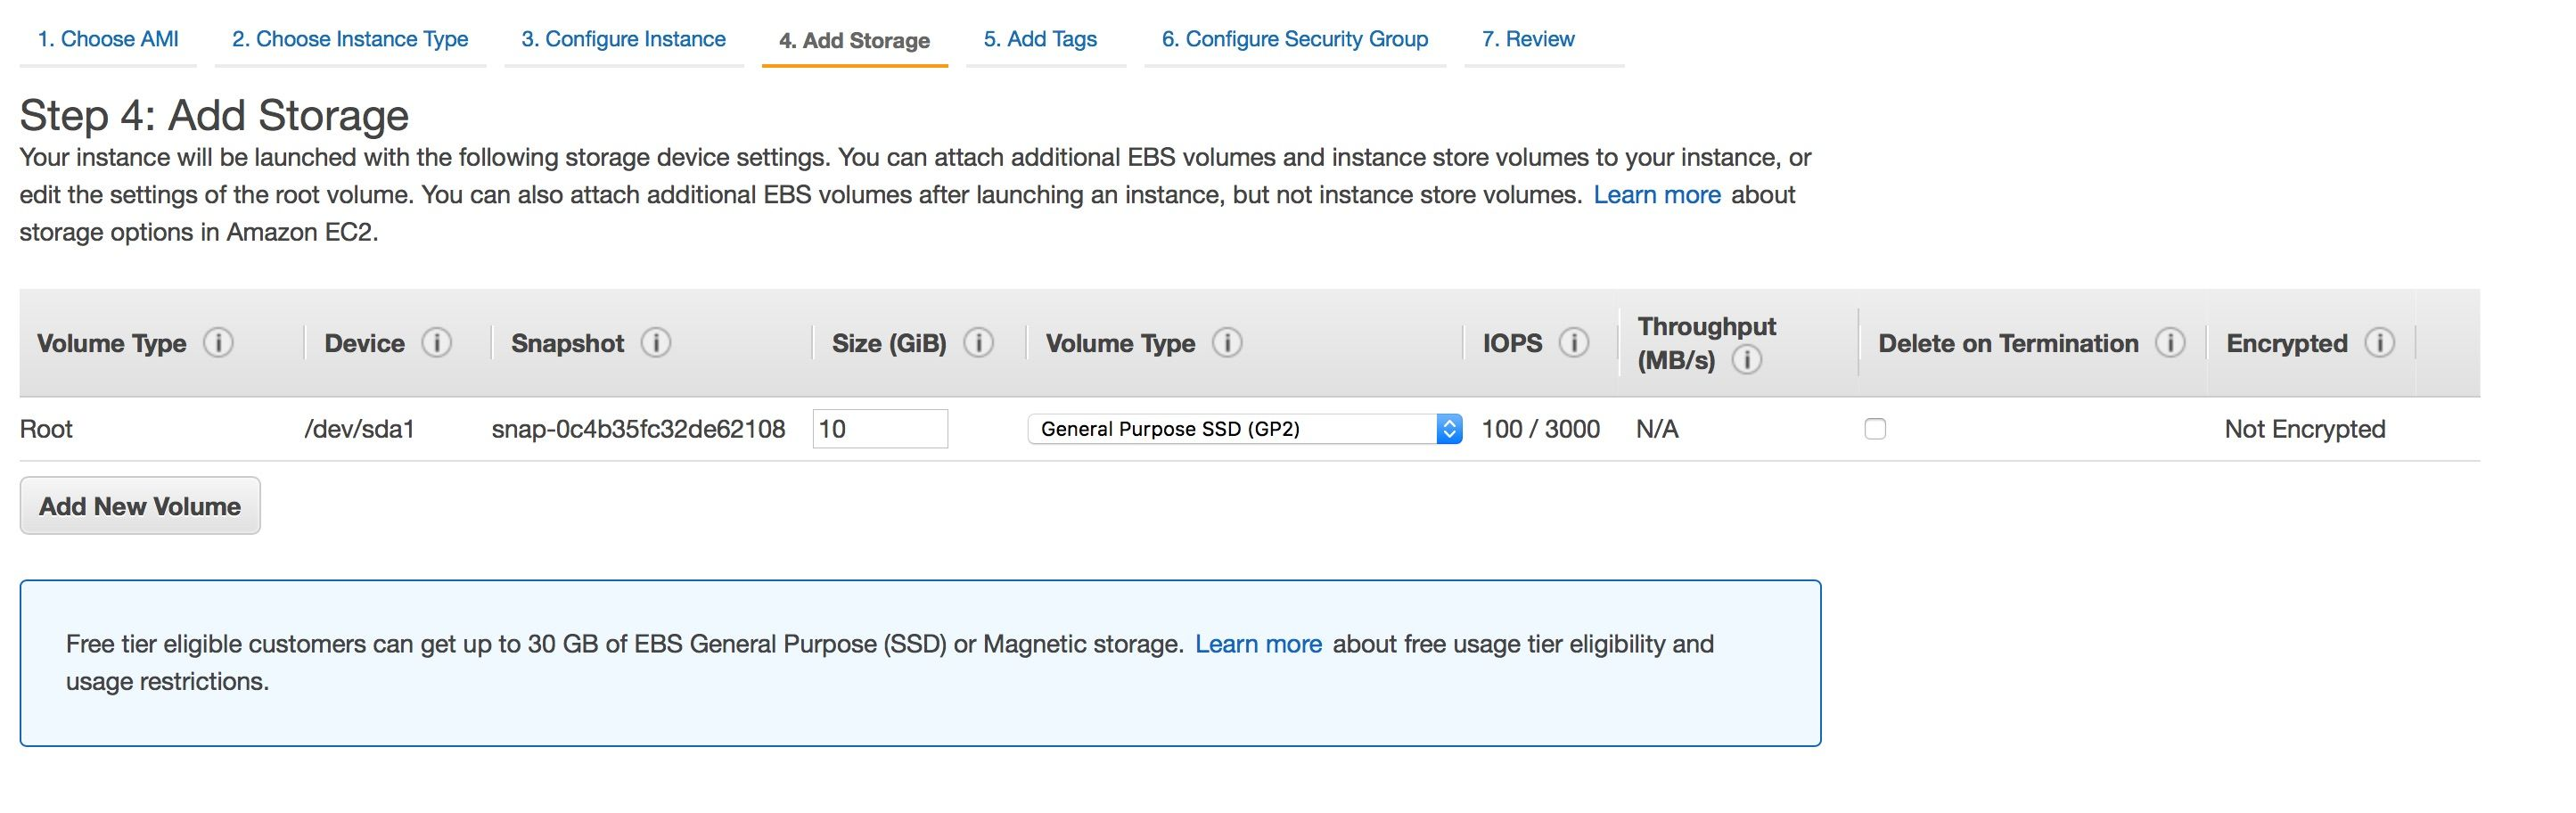 ec2 add storage